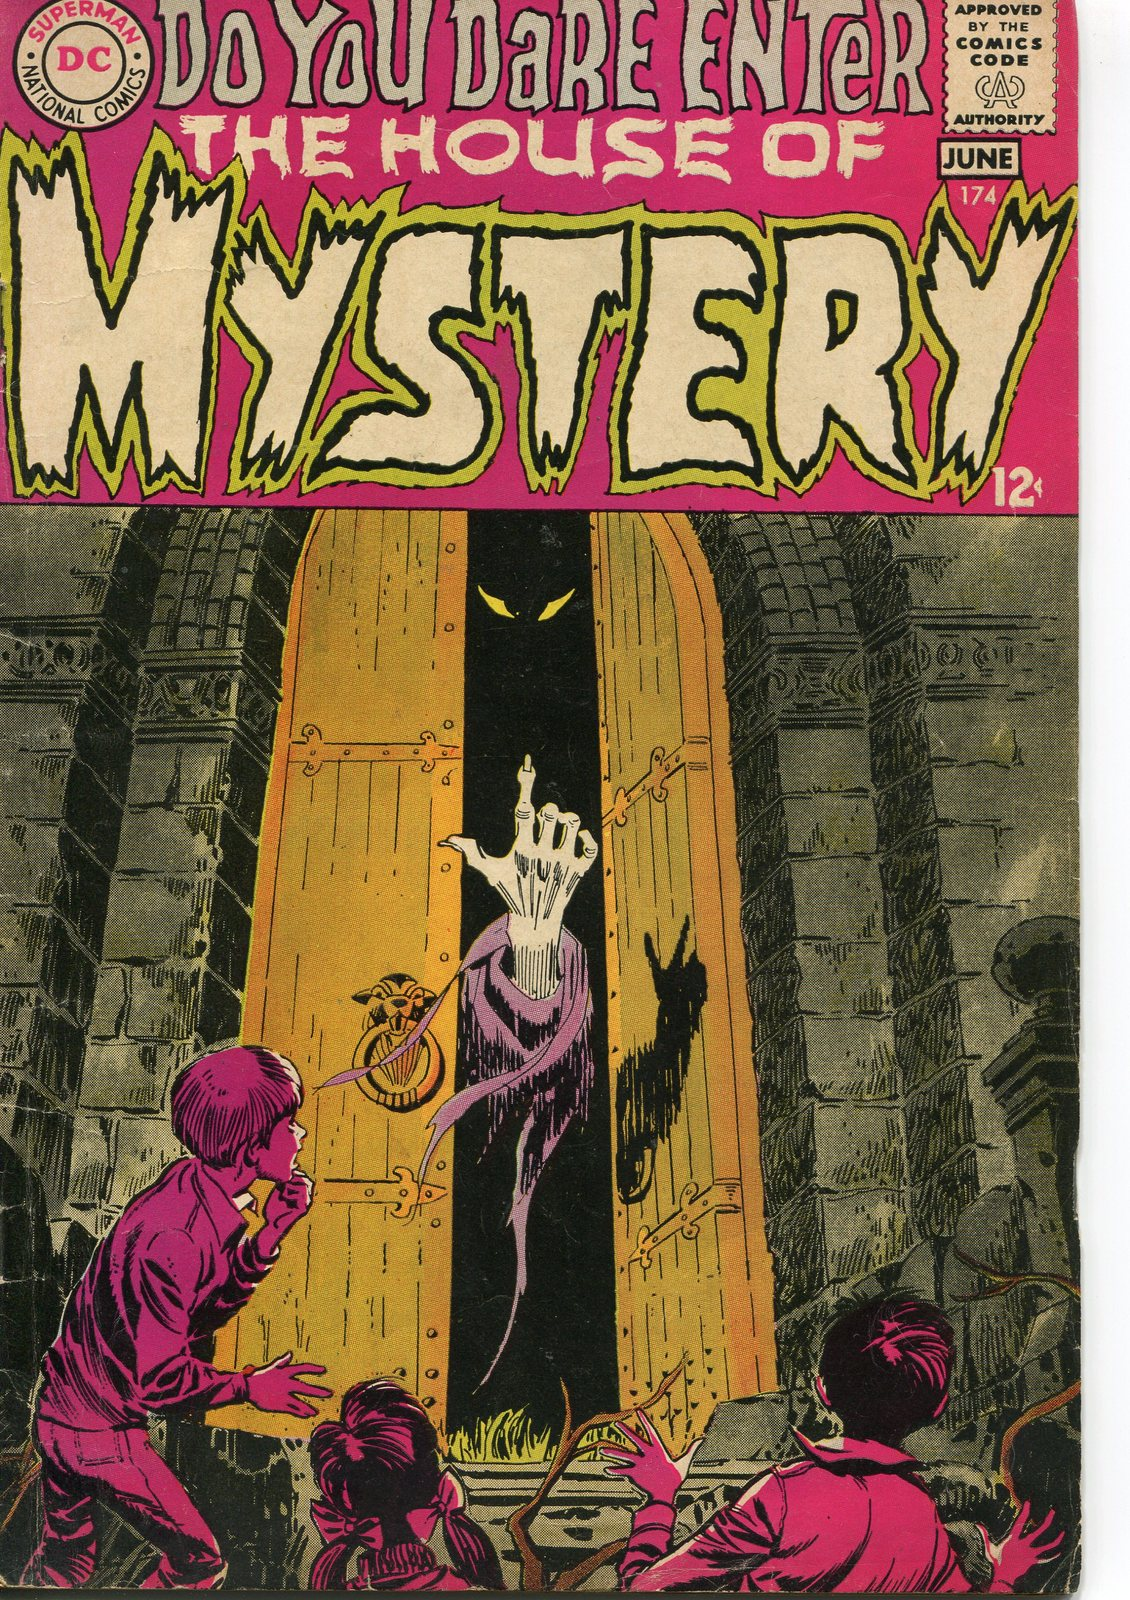 House Of Mystery #174 Back Issue Comic Book (Jun 1968) Very Good